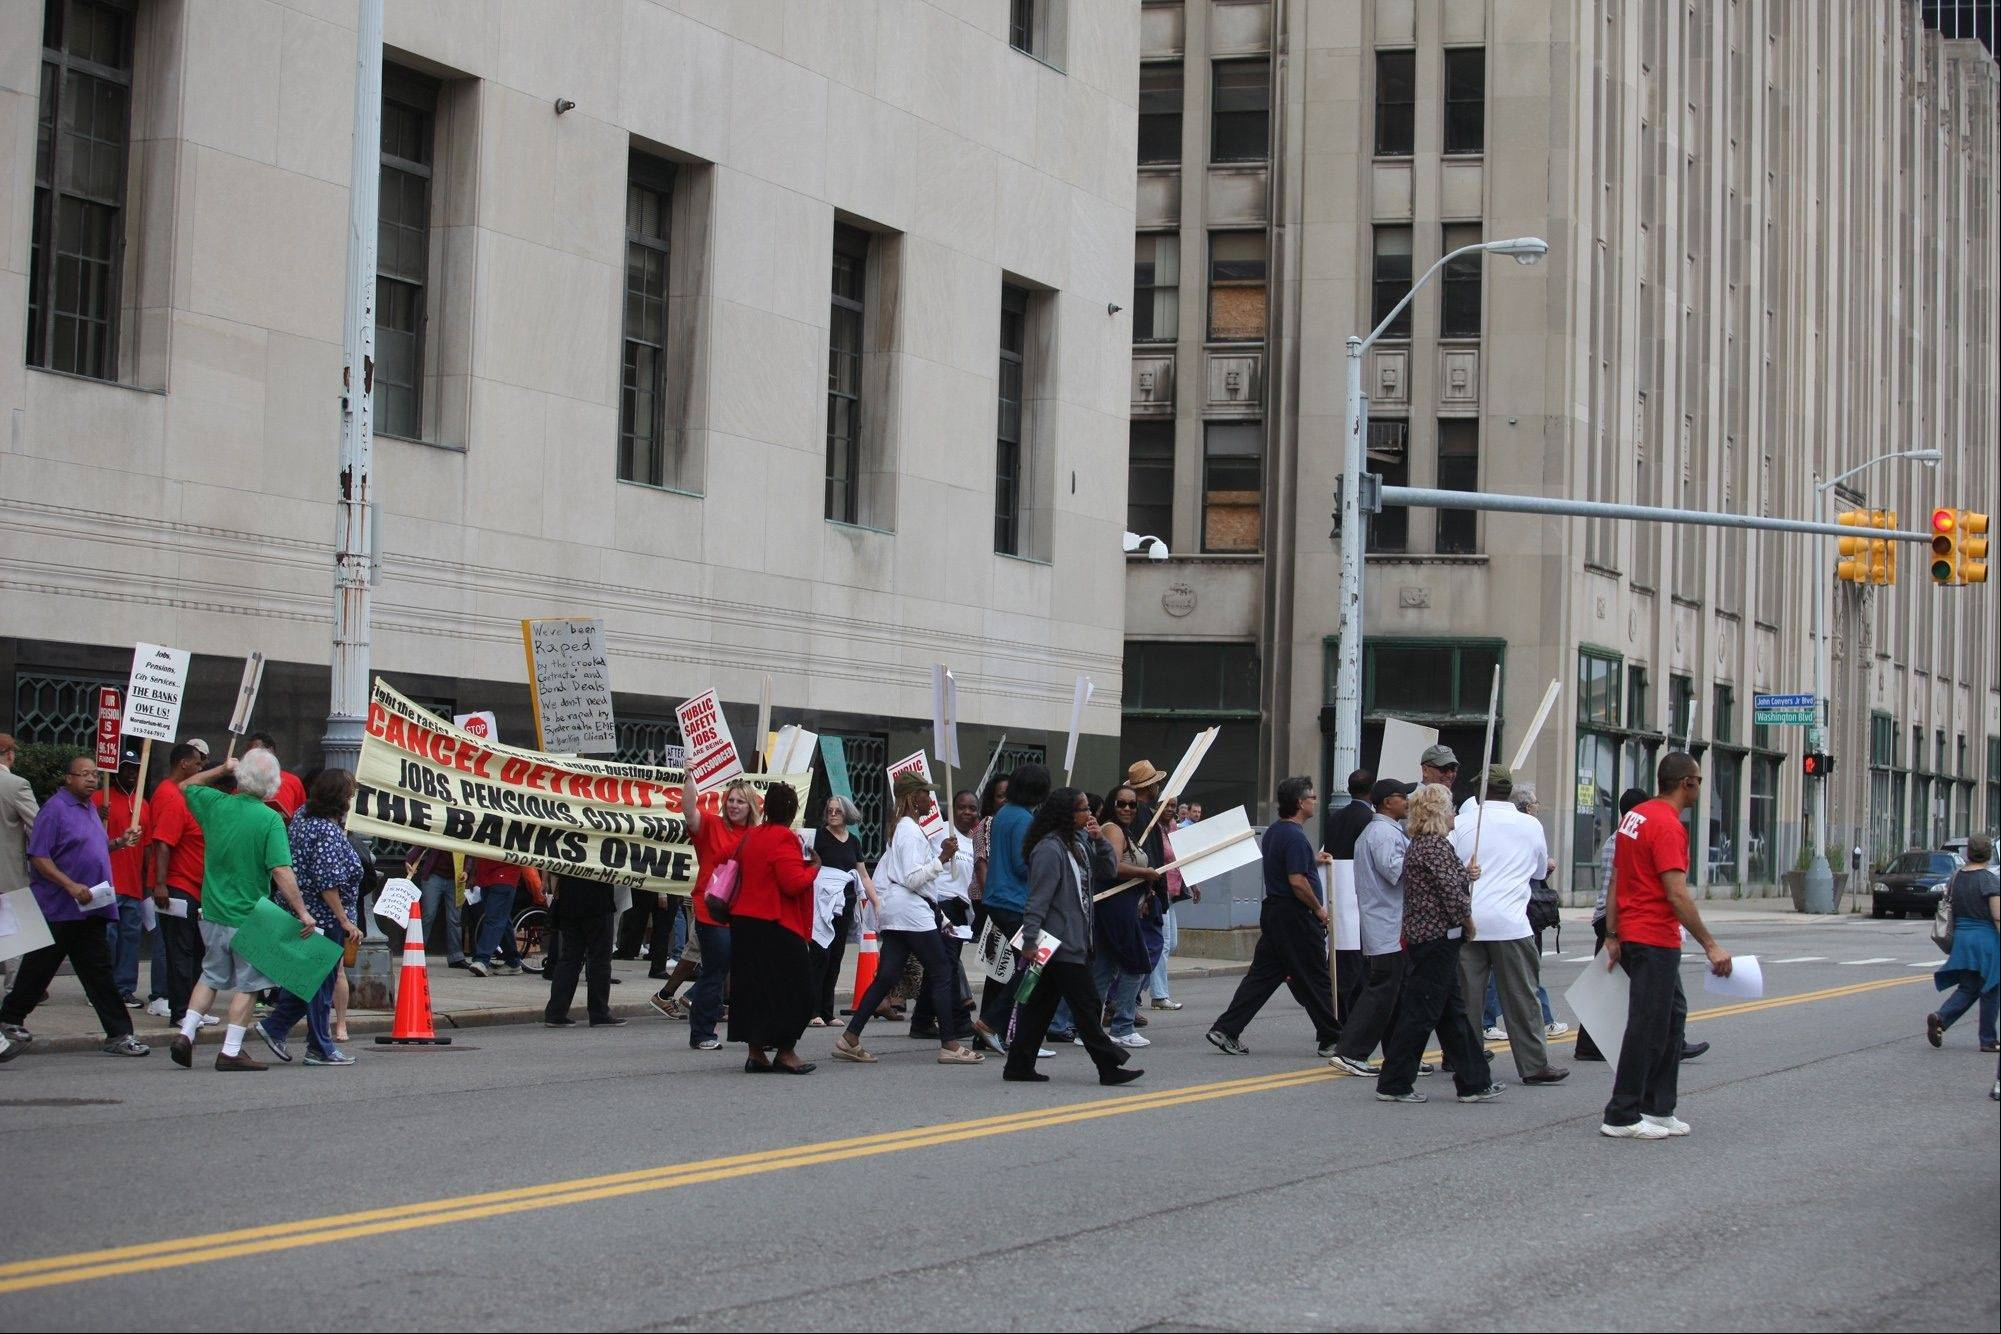 Protesters cross the street in front of federal court in Detroit Friday, Aug. 2, 2013. Candidates in Detroit's mayoral primary are racing to lead the largest U.S. city ever to file for bankruptcy, while yielding complete control of its finances to a state-appointed emergency manager.